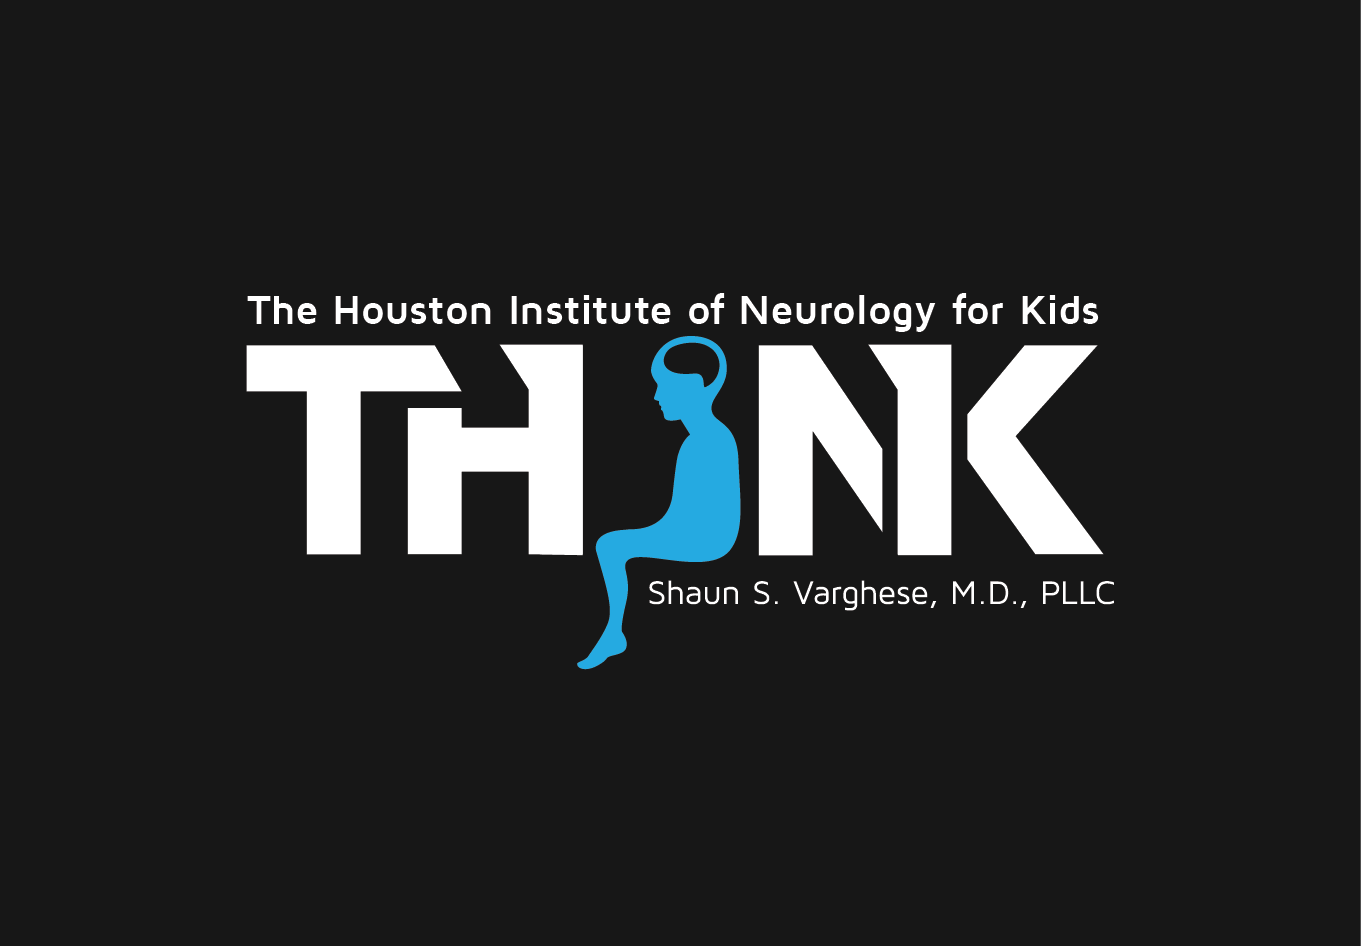 Guaranteed Prize for LOGO - THINK - The Houston Institute of Neurology for Kids